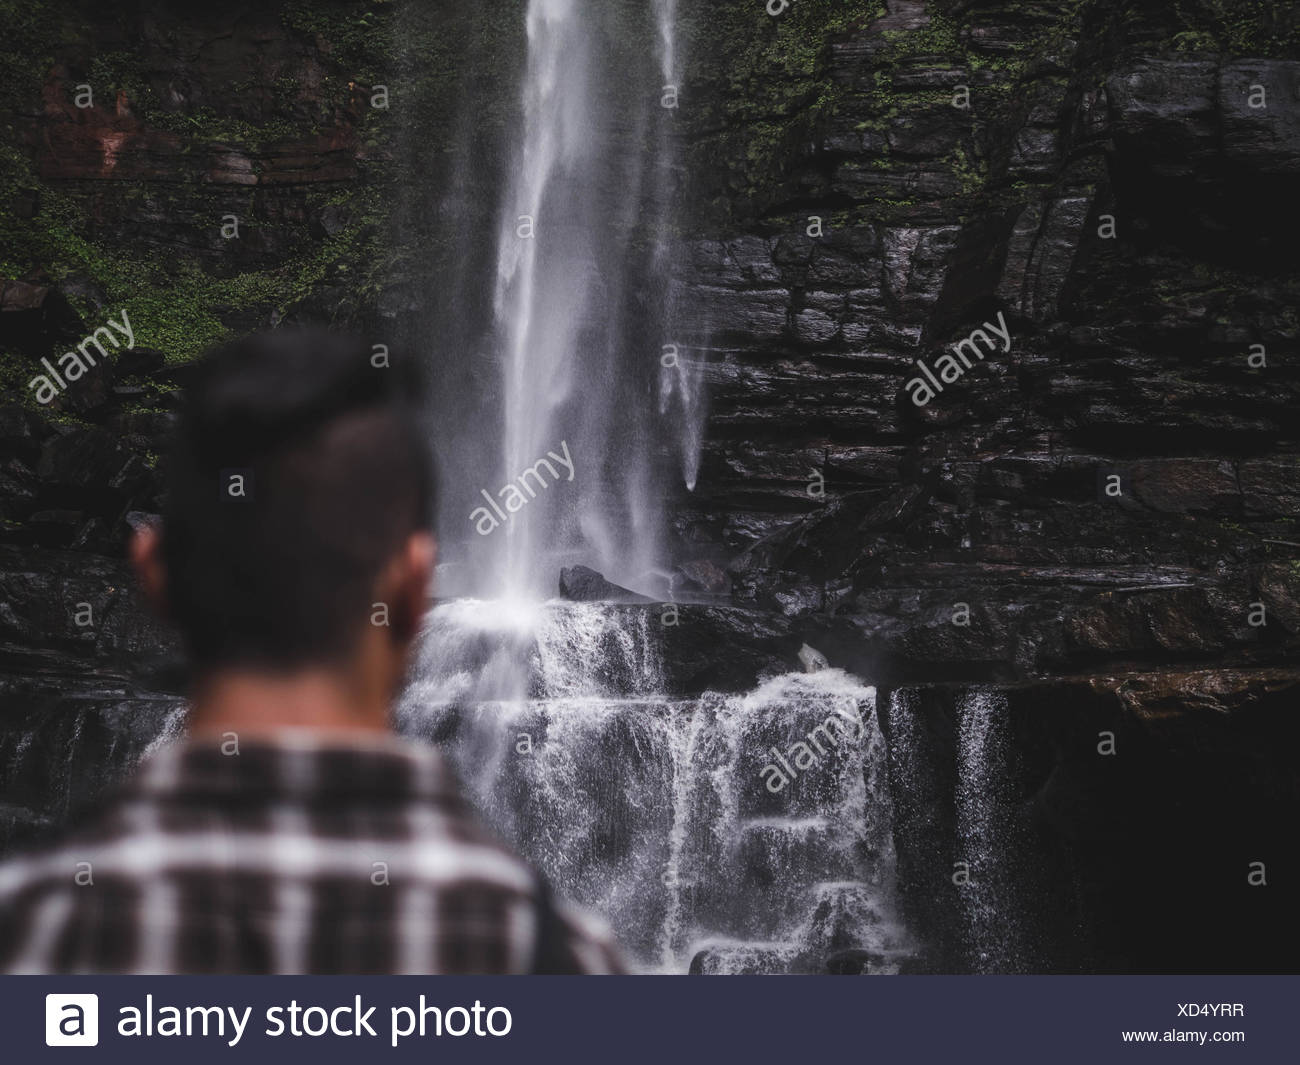 Rear View Of Man Against Waterfall - Stock Image